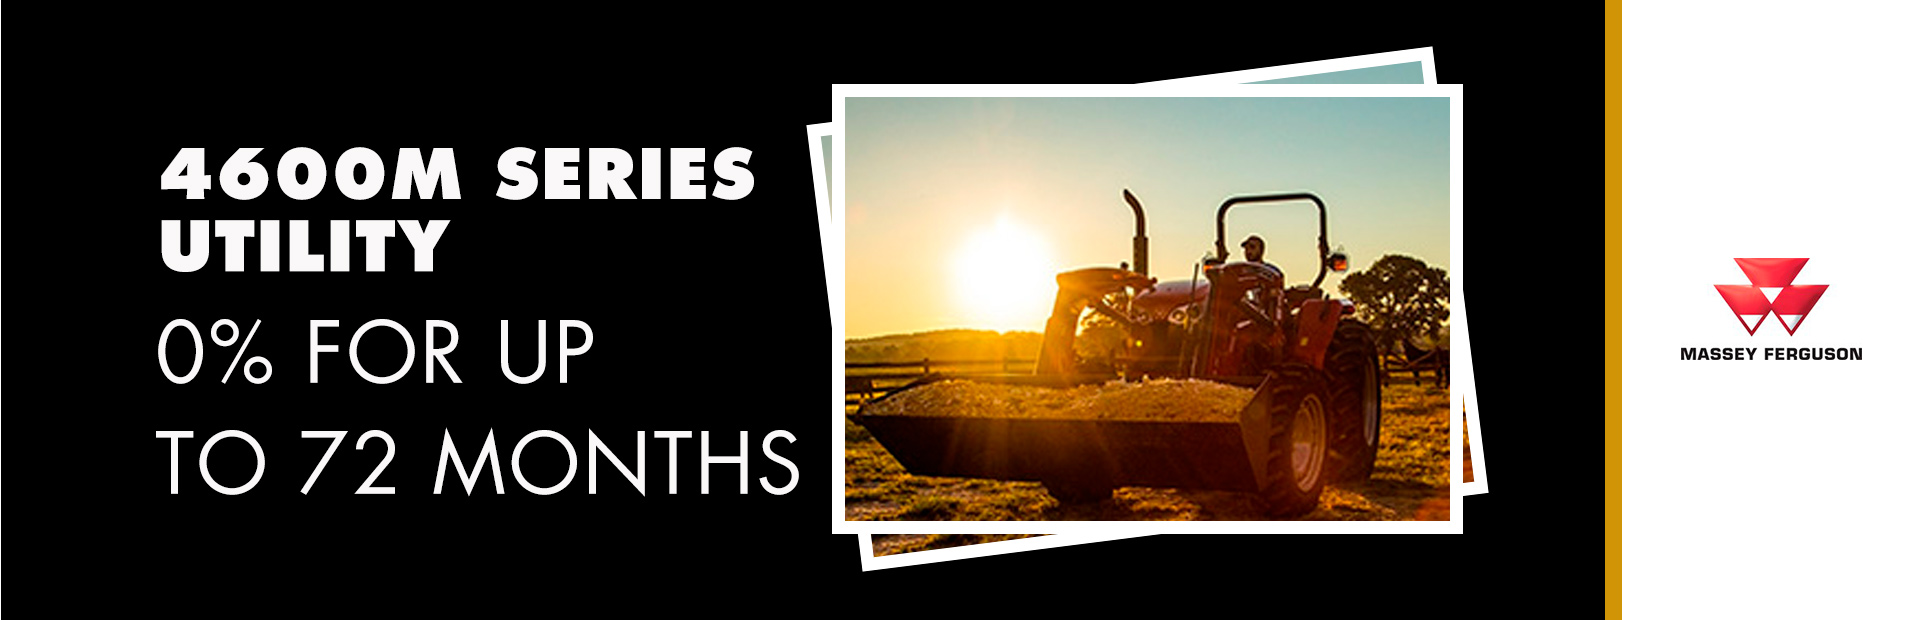 Massey Ferguson: 4600M Series Utility - 0% for up to 72 Months